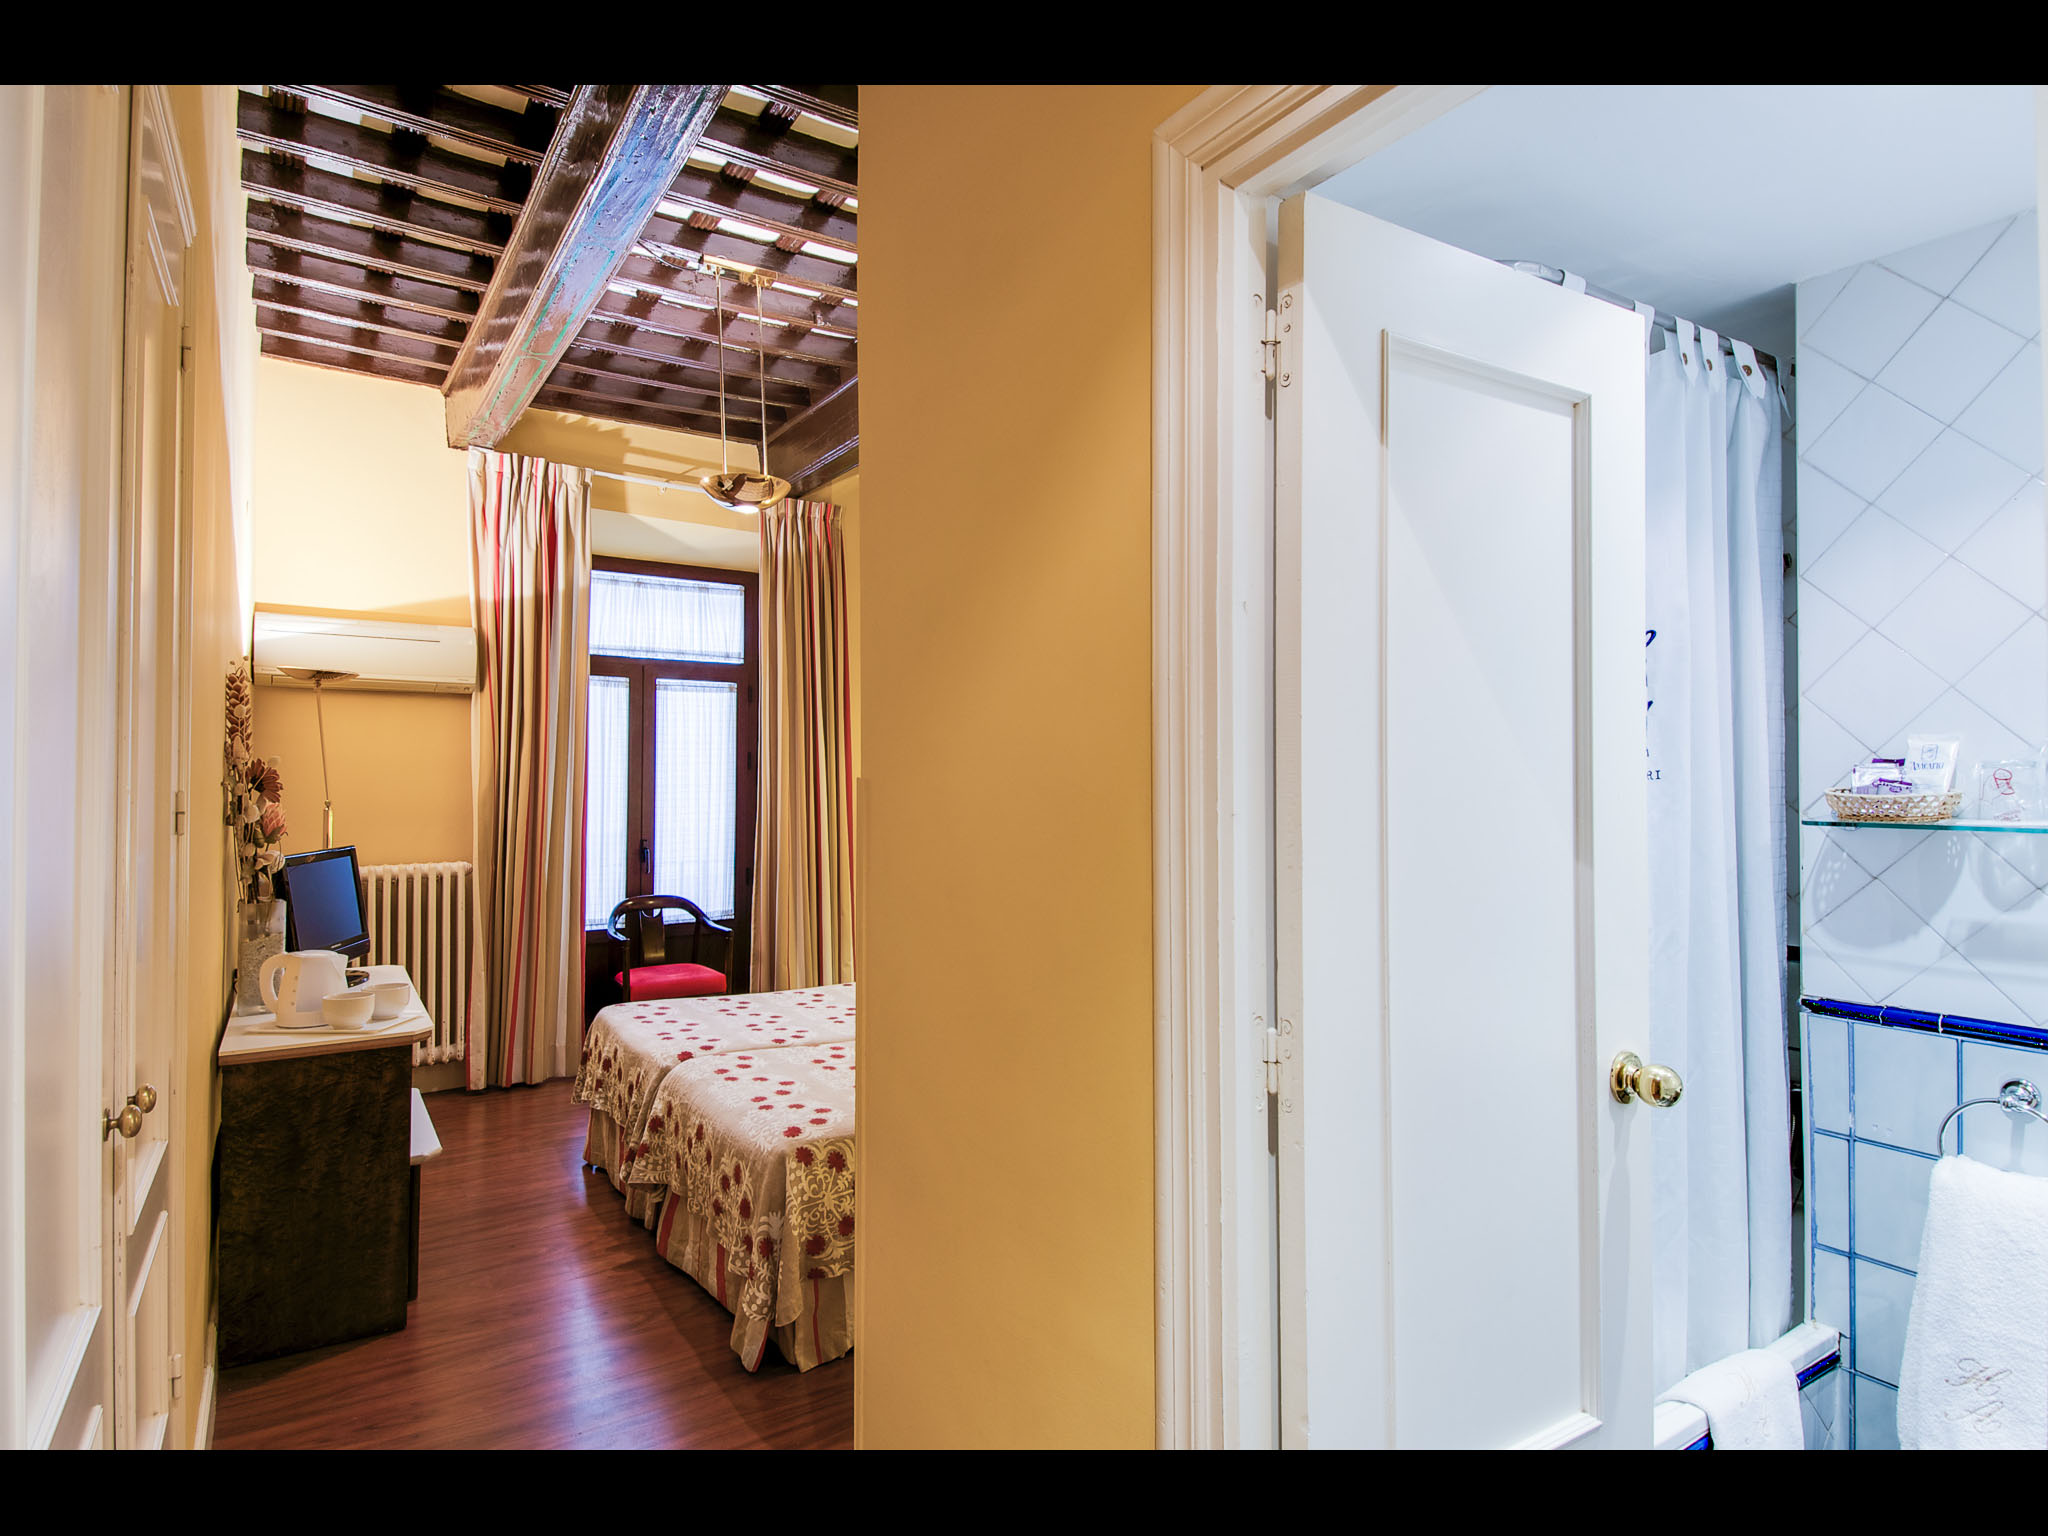 Room with coffered